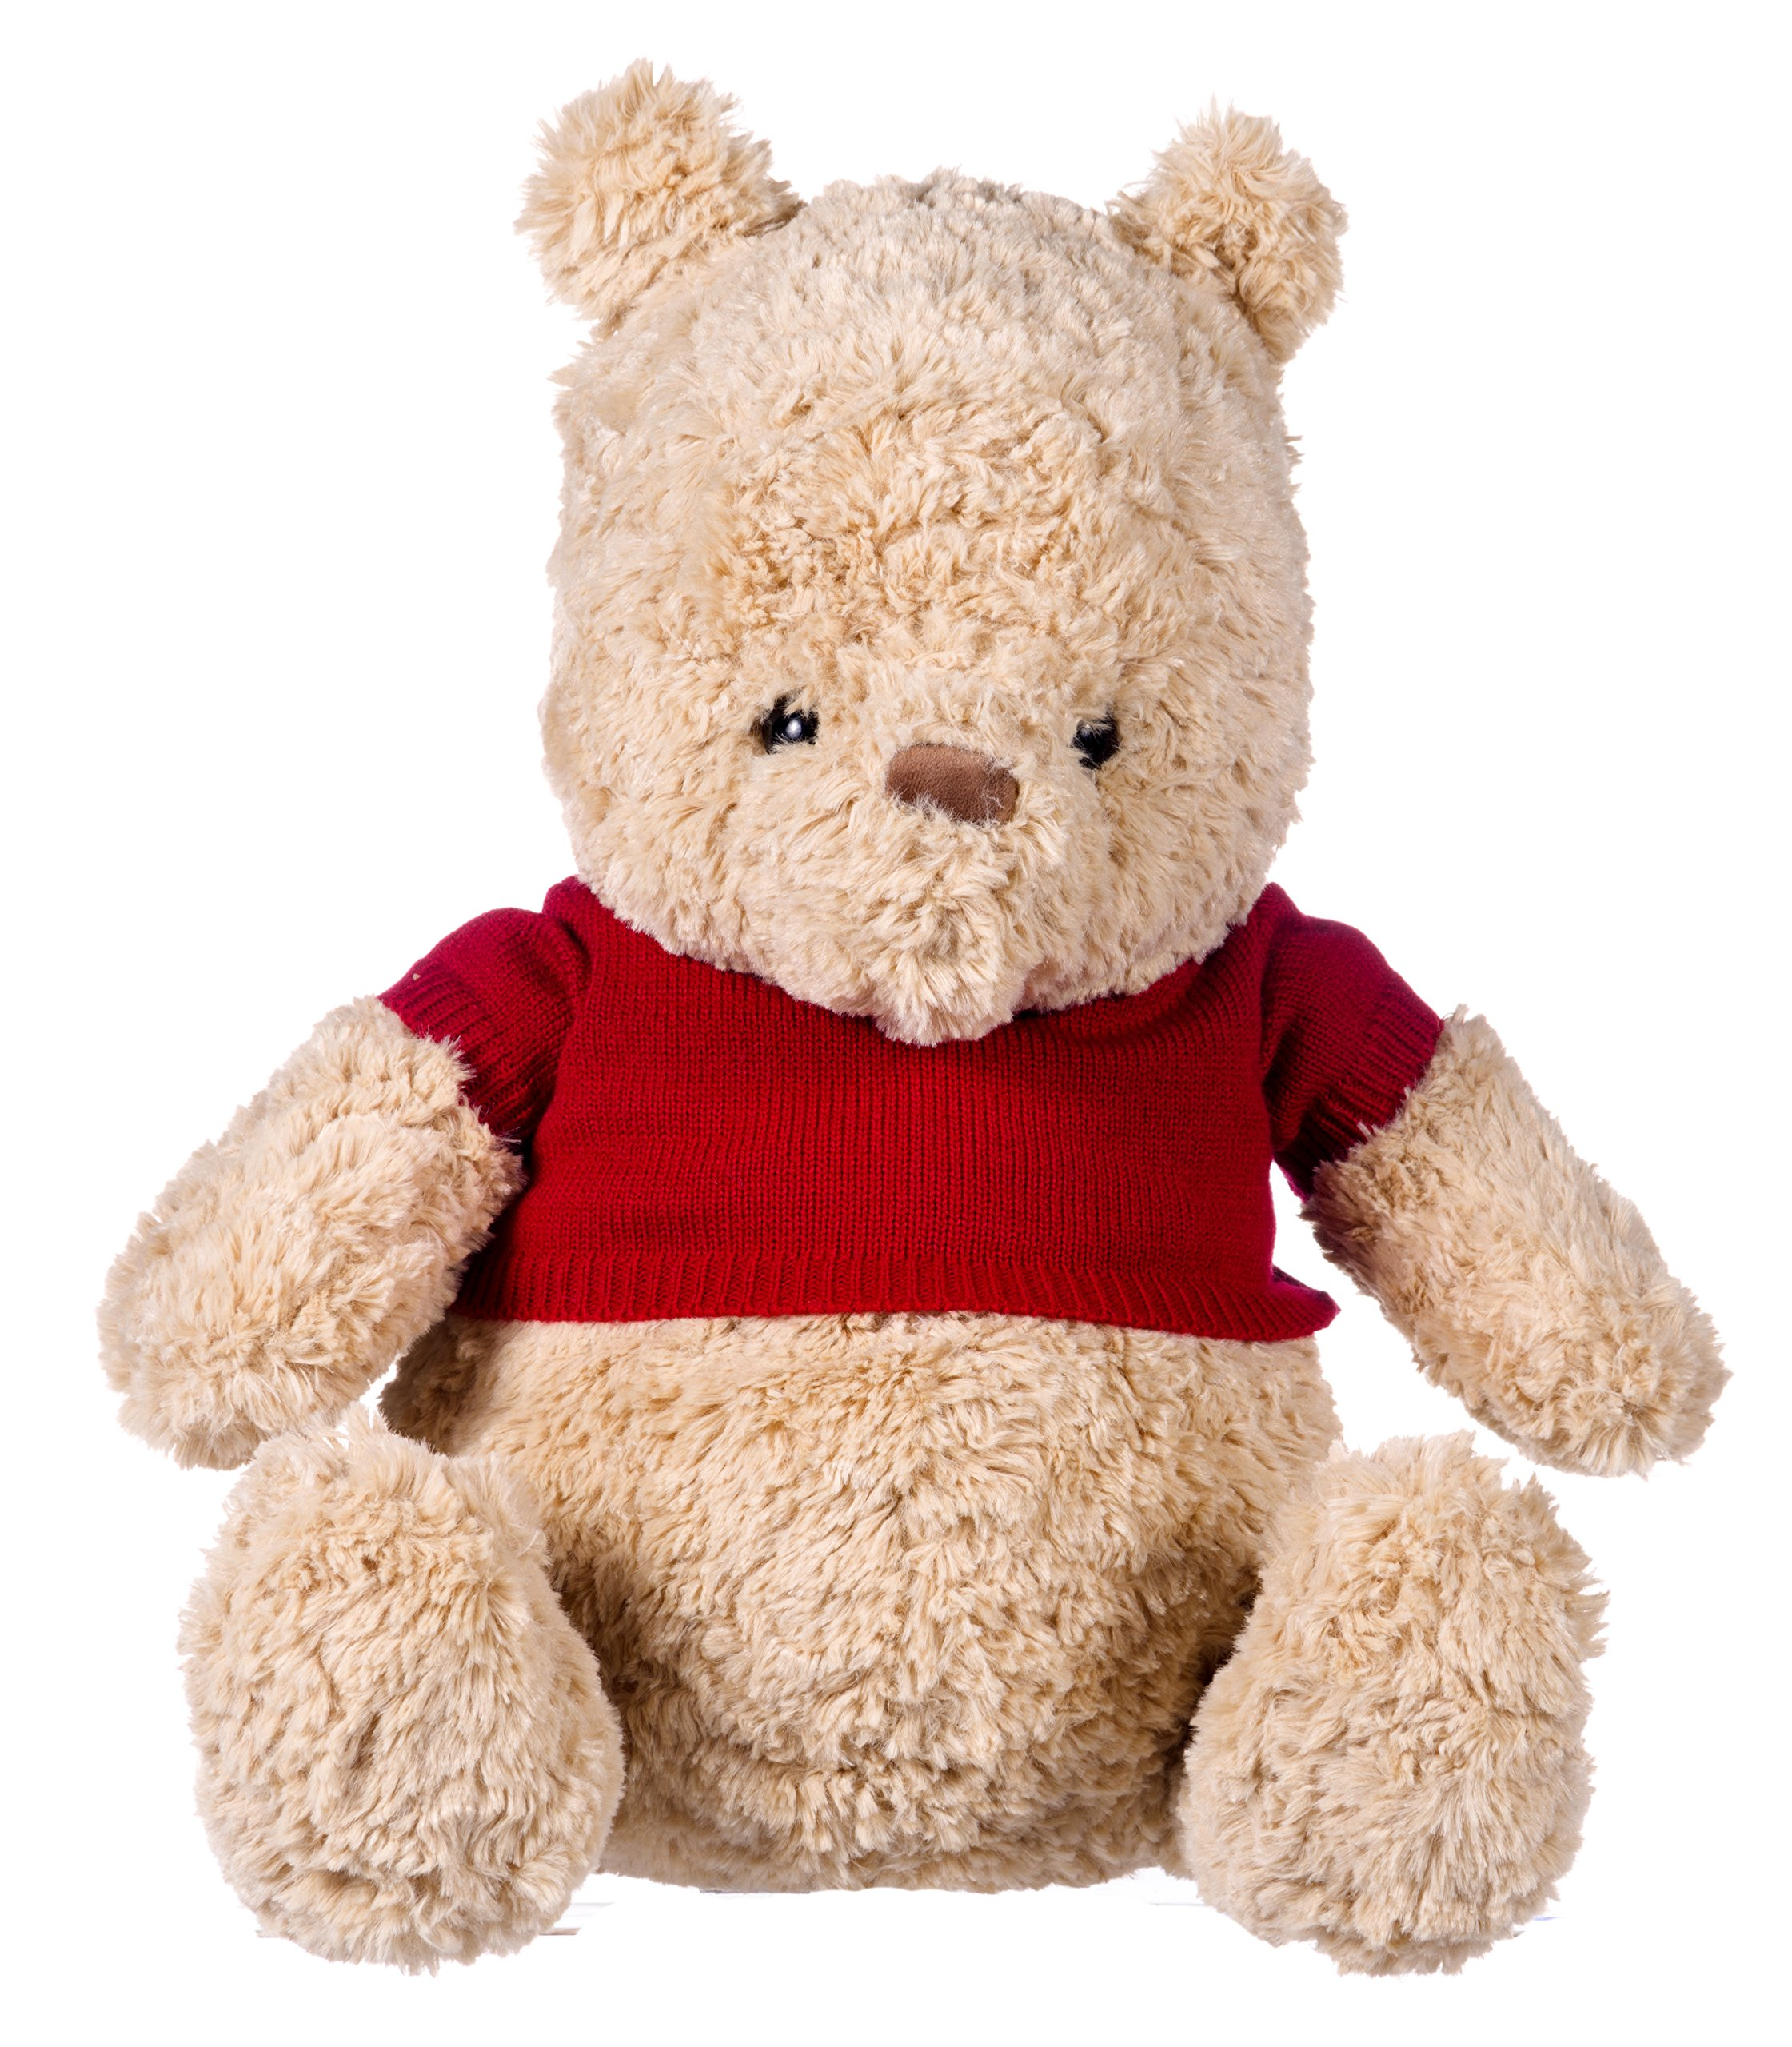 Disney Christopher Robin Collection Large Winnie The Pooh Soft Toy - 50cm by Posh Paws